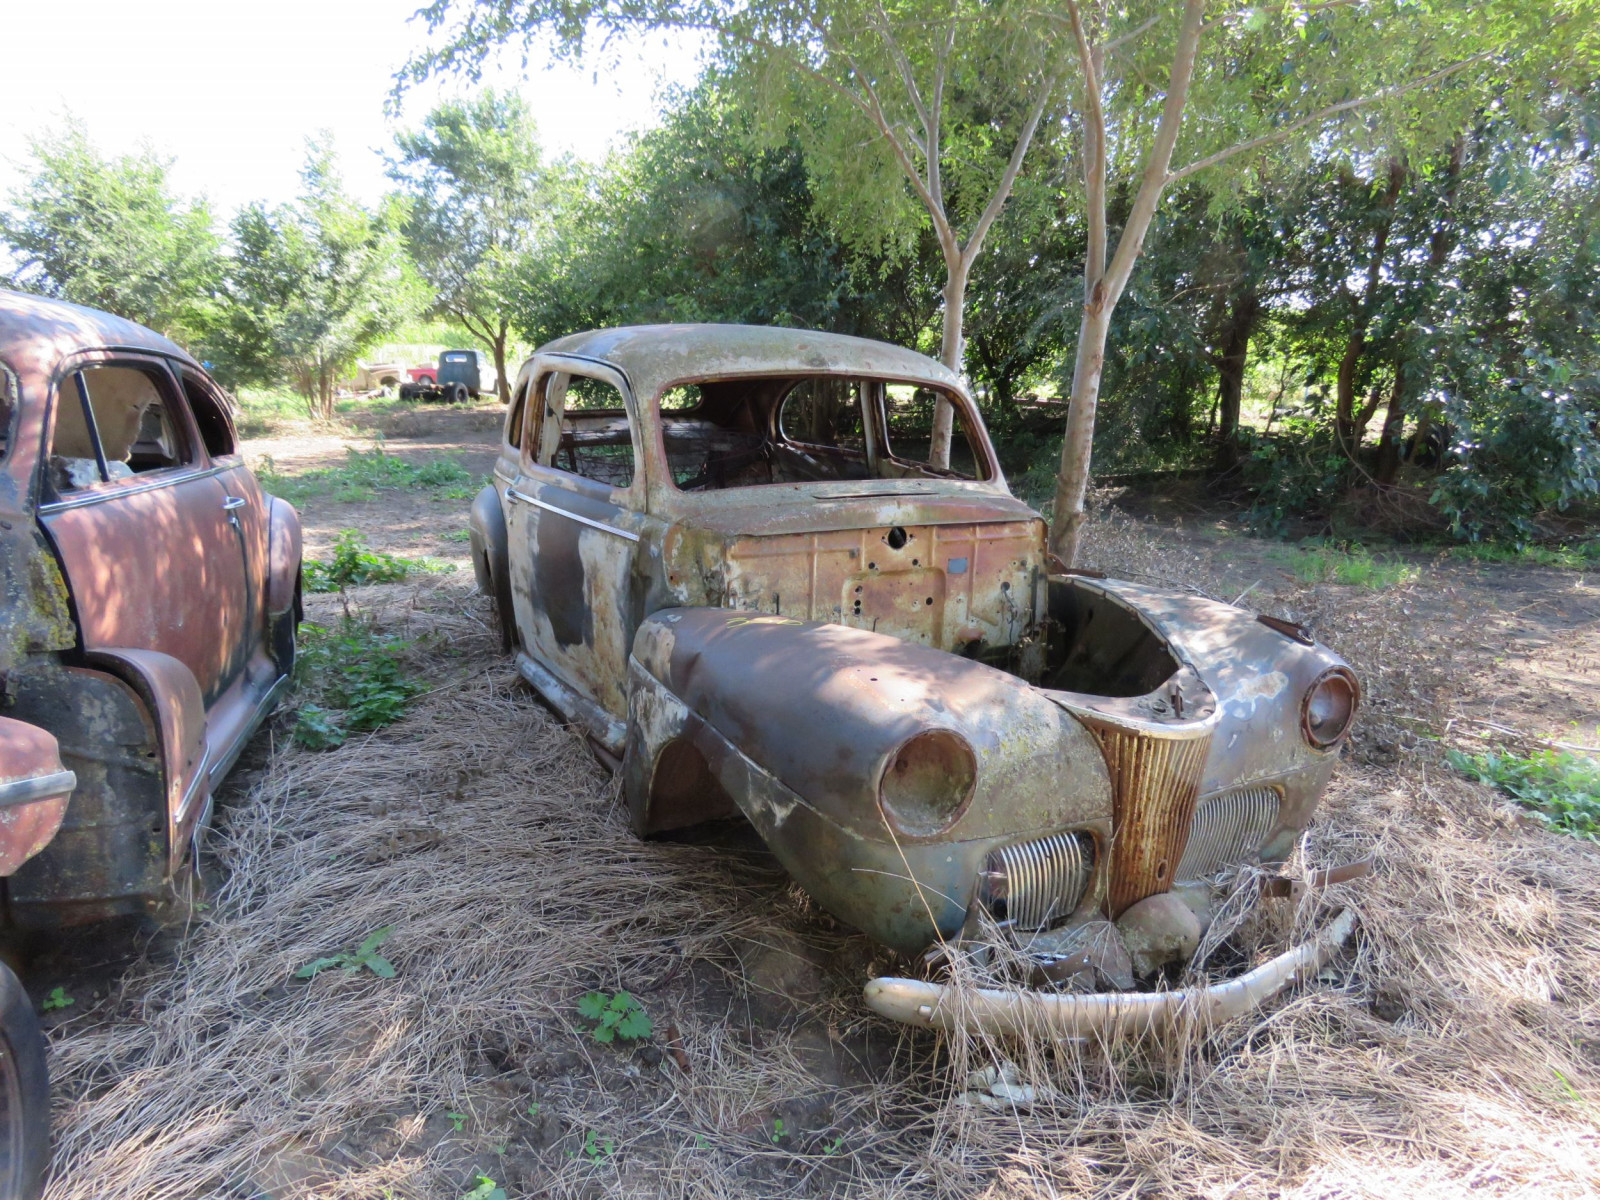 1941 Ford 2dr Sedan Body for Project or Parts - Image 1